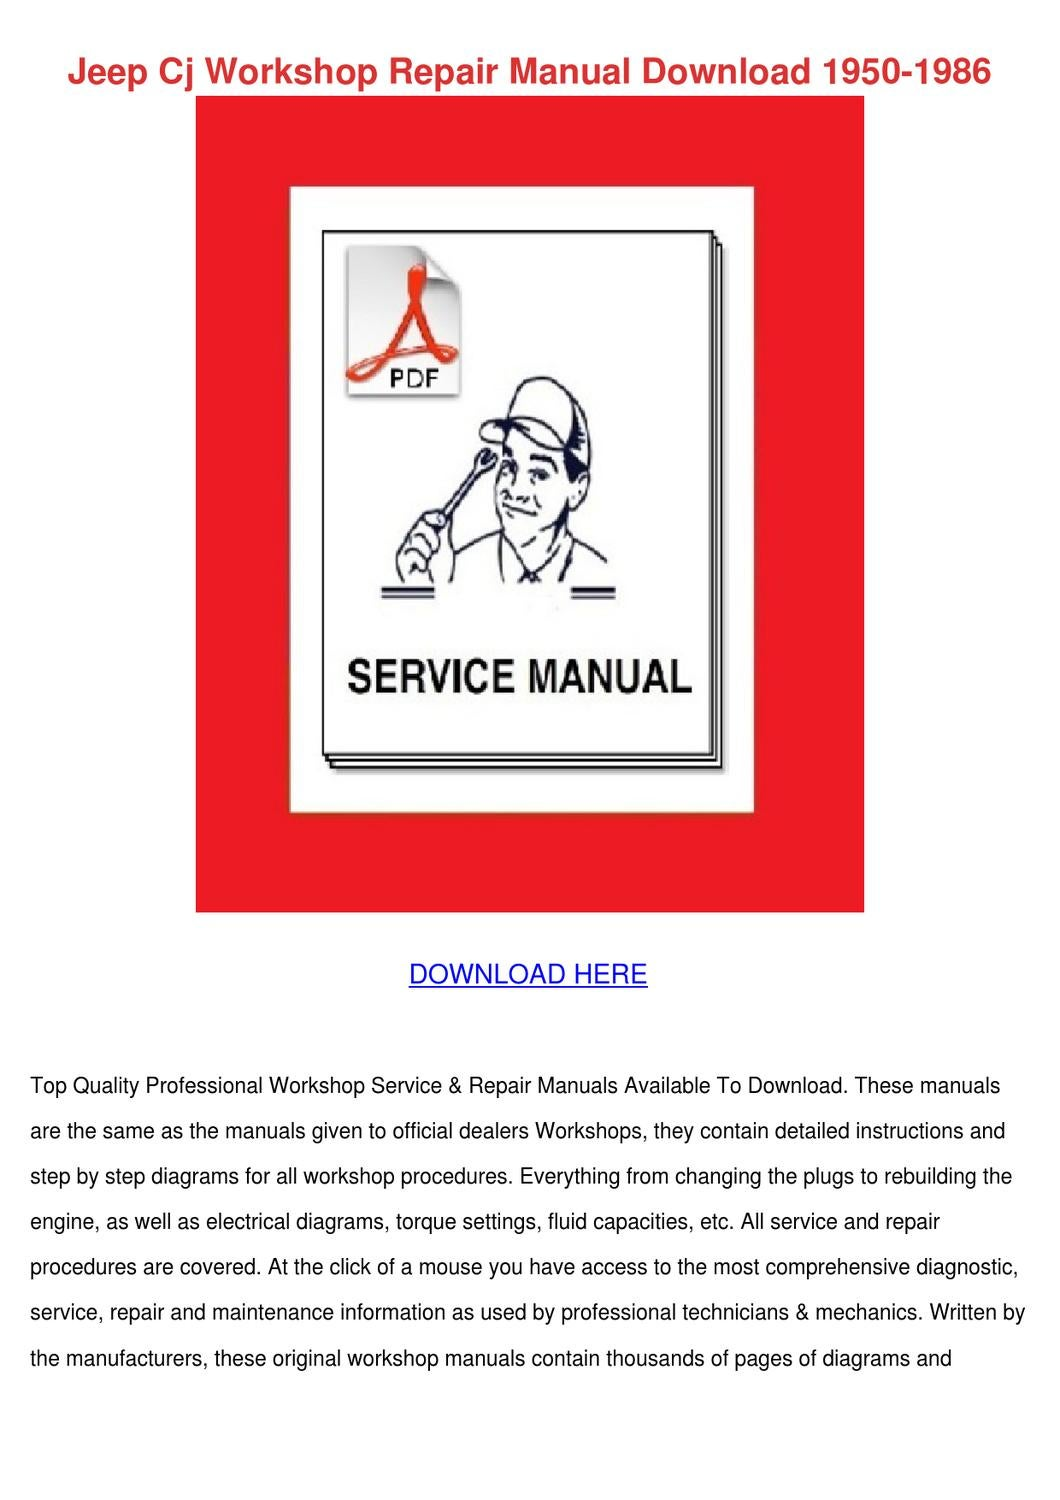 Jeep Cj Workshop Repair Manual Download 1950 By Kam Shull Issuu Willys Jeepster Wiring Diagram